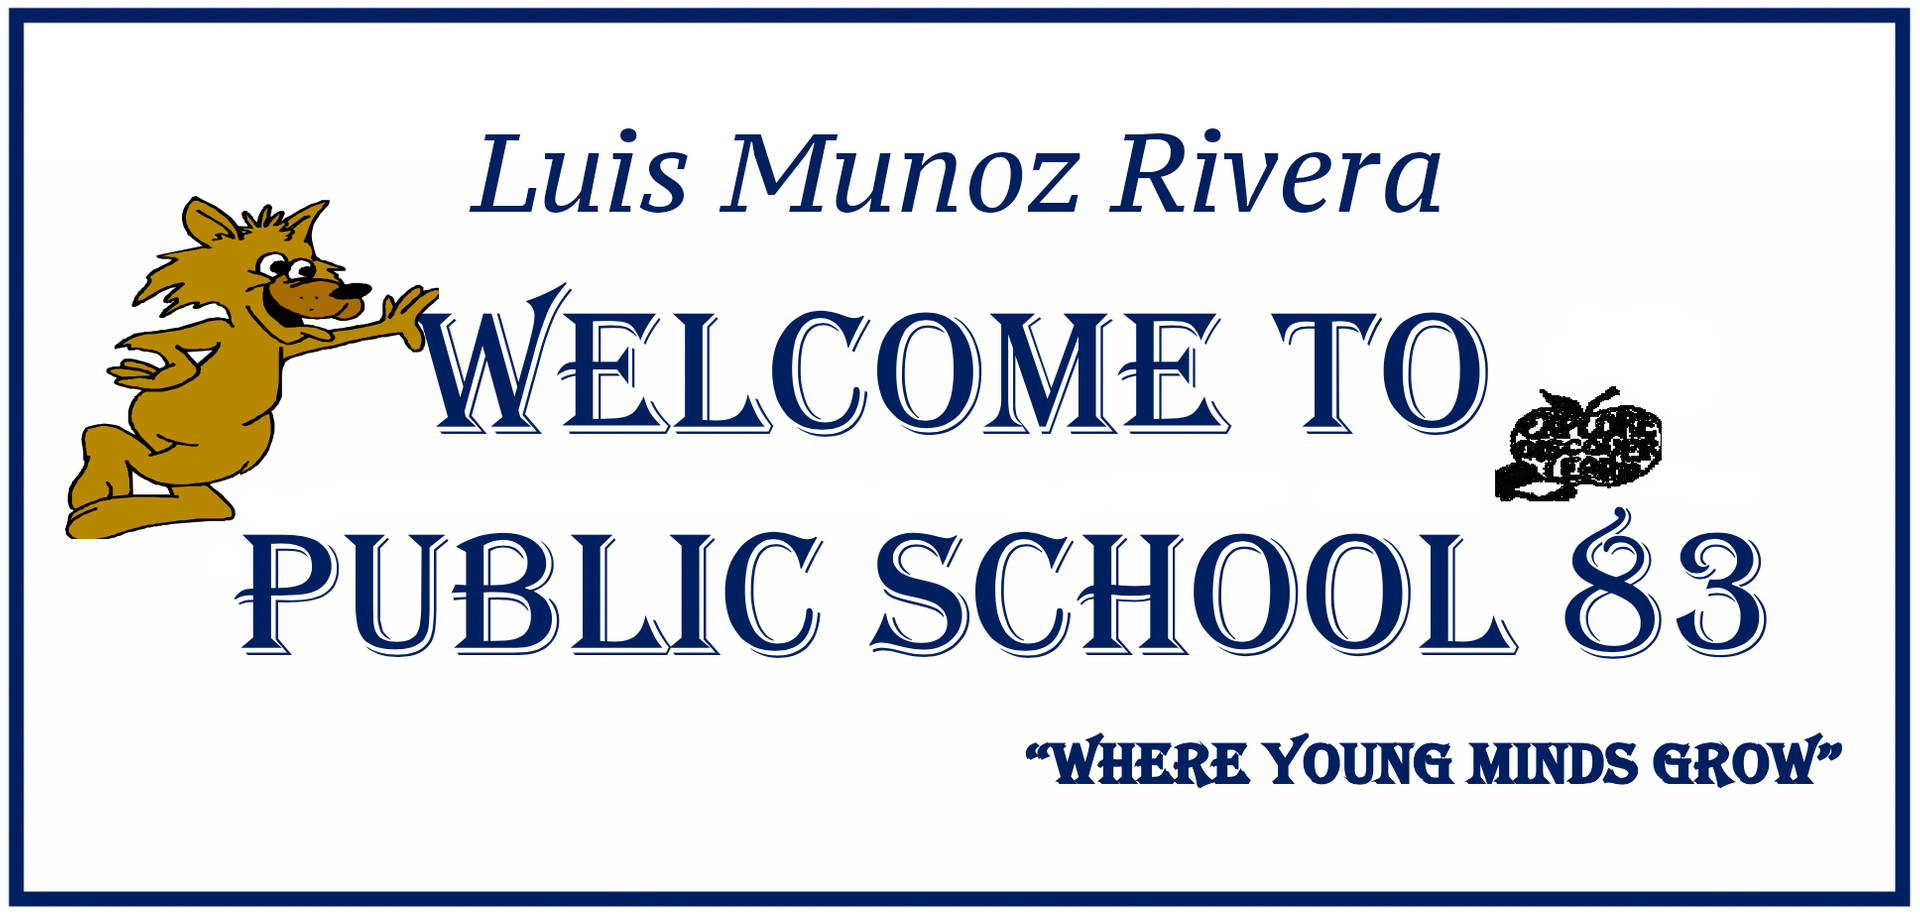 Welcome to Public School 83: where young minds grow